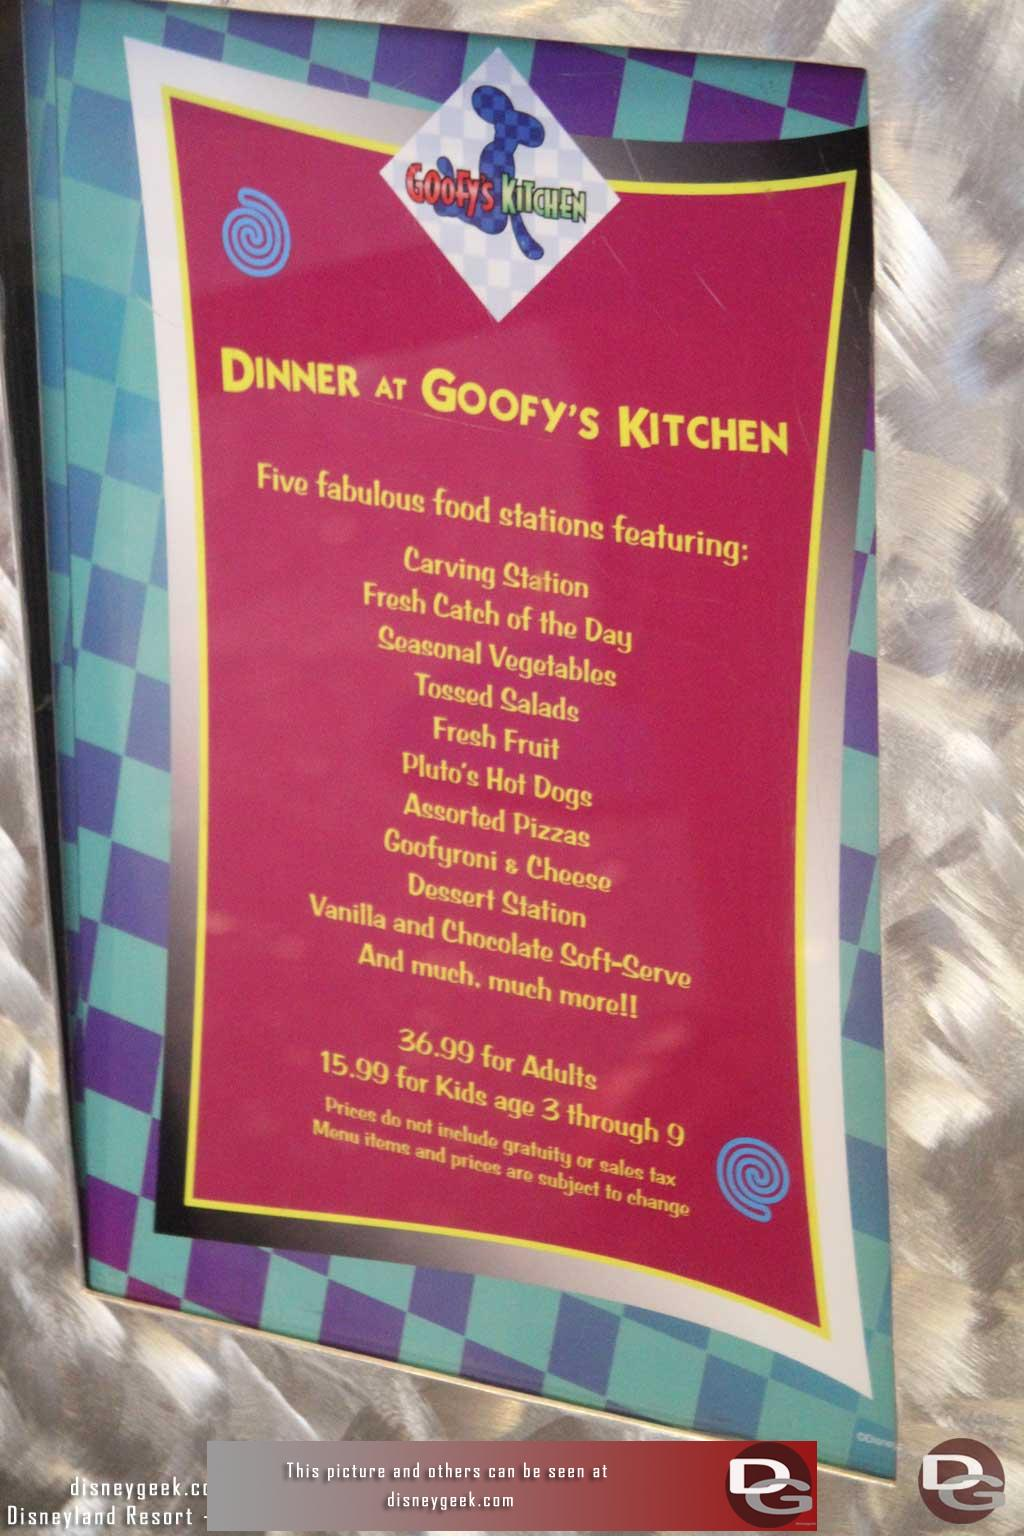 Disneygeek Disneyland Resort Guide Dining Goofy S